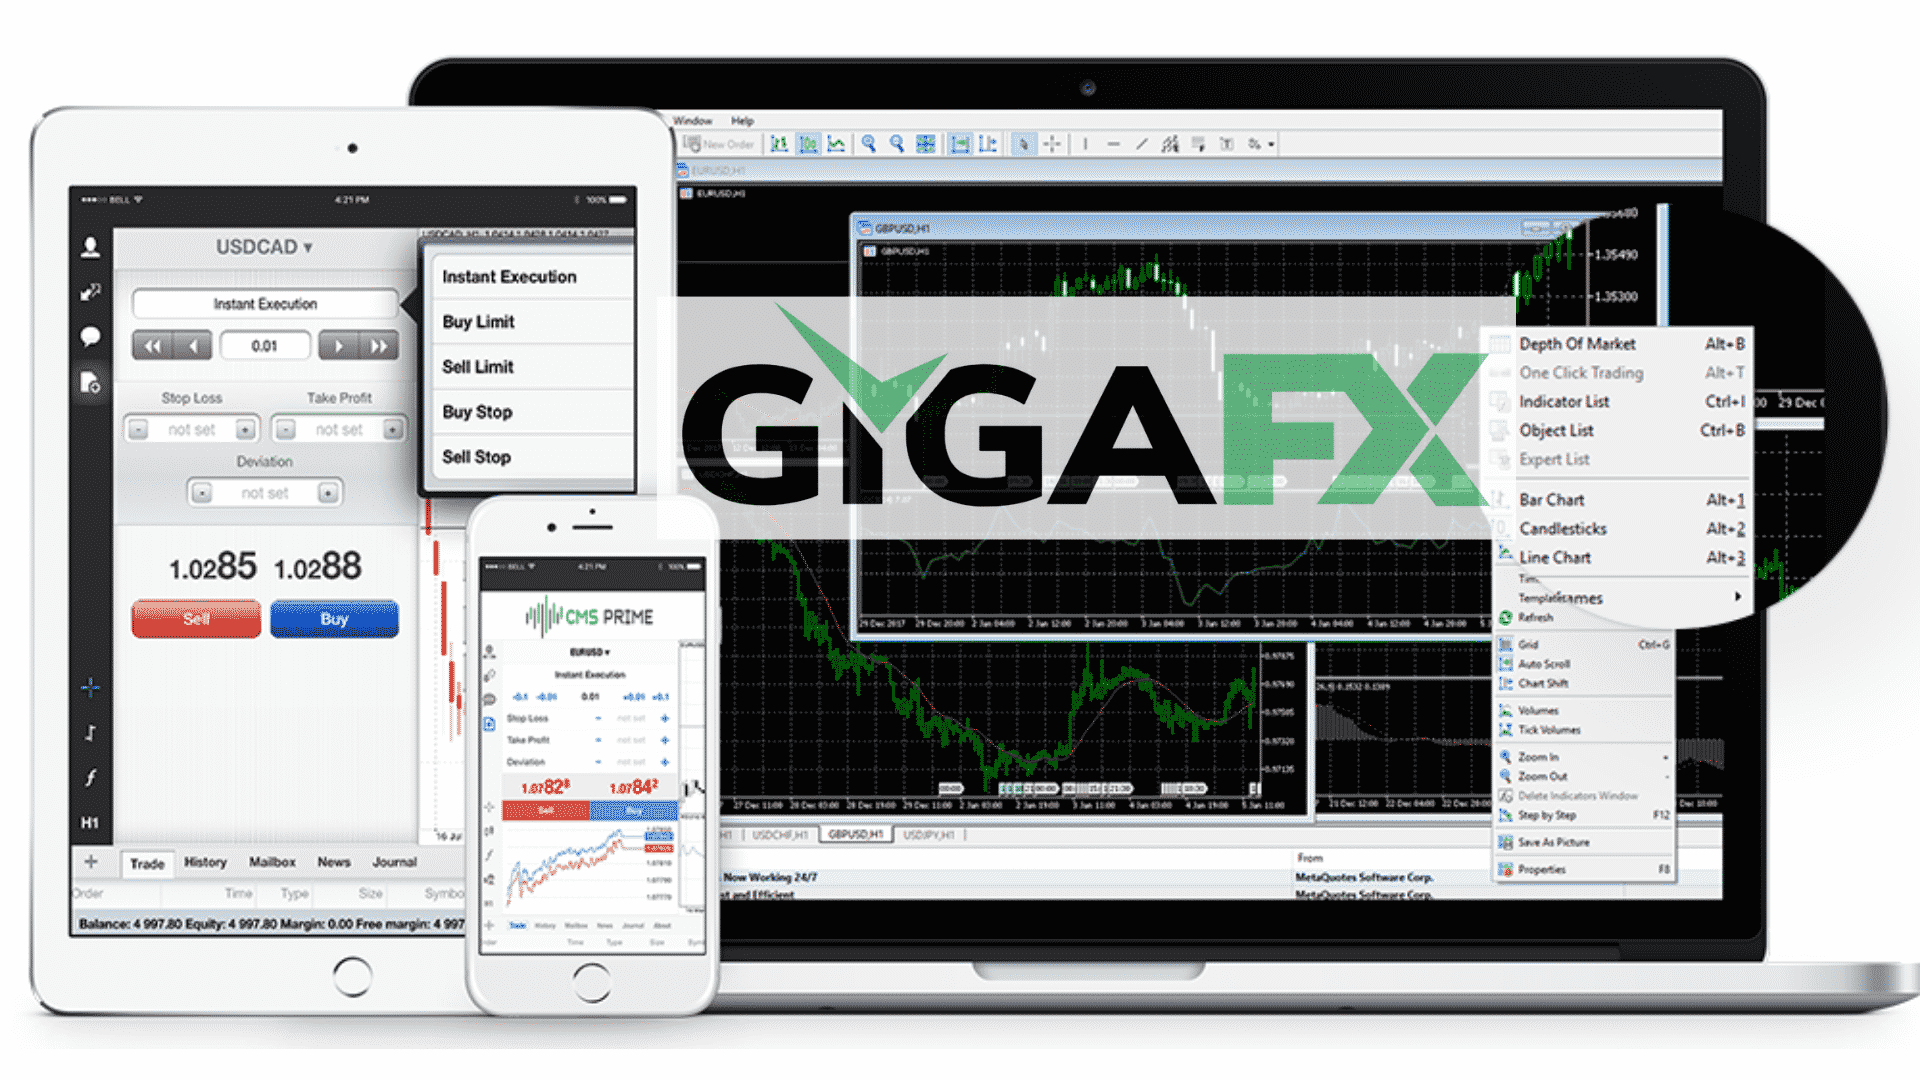 GigaFX - trading platform with advanced tools